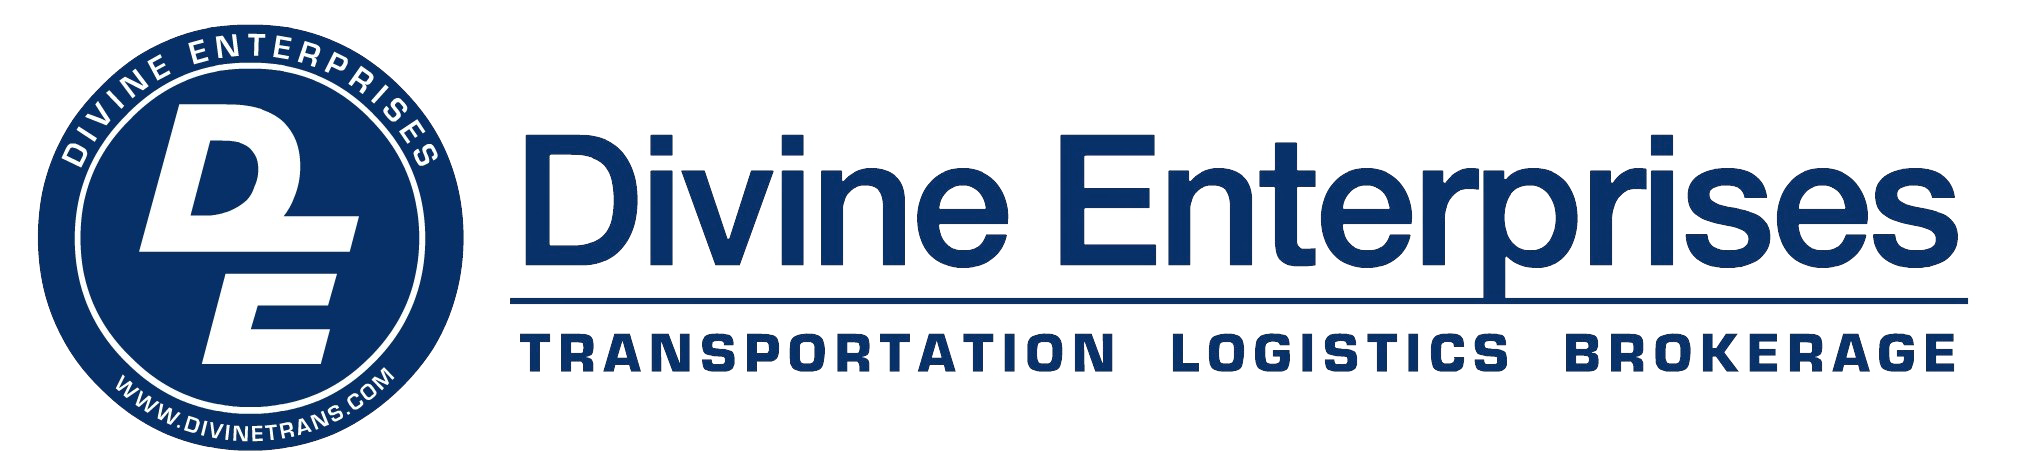 divine enterprises logo